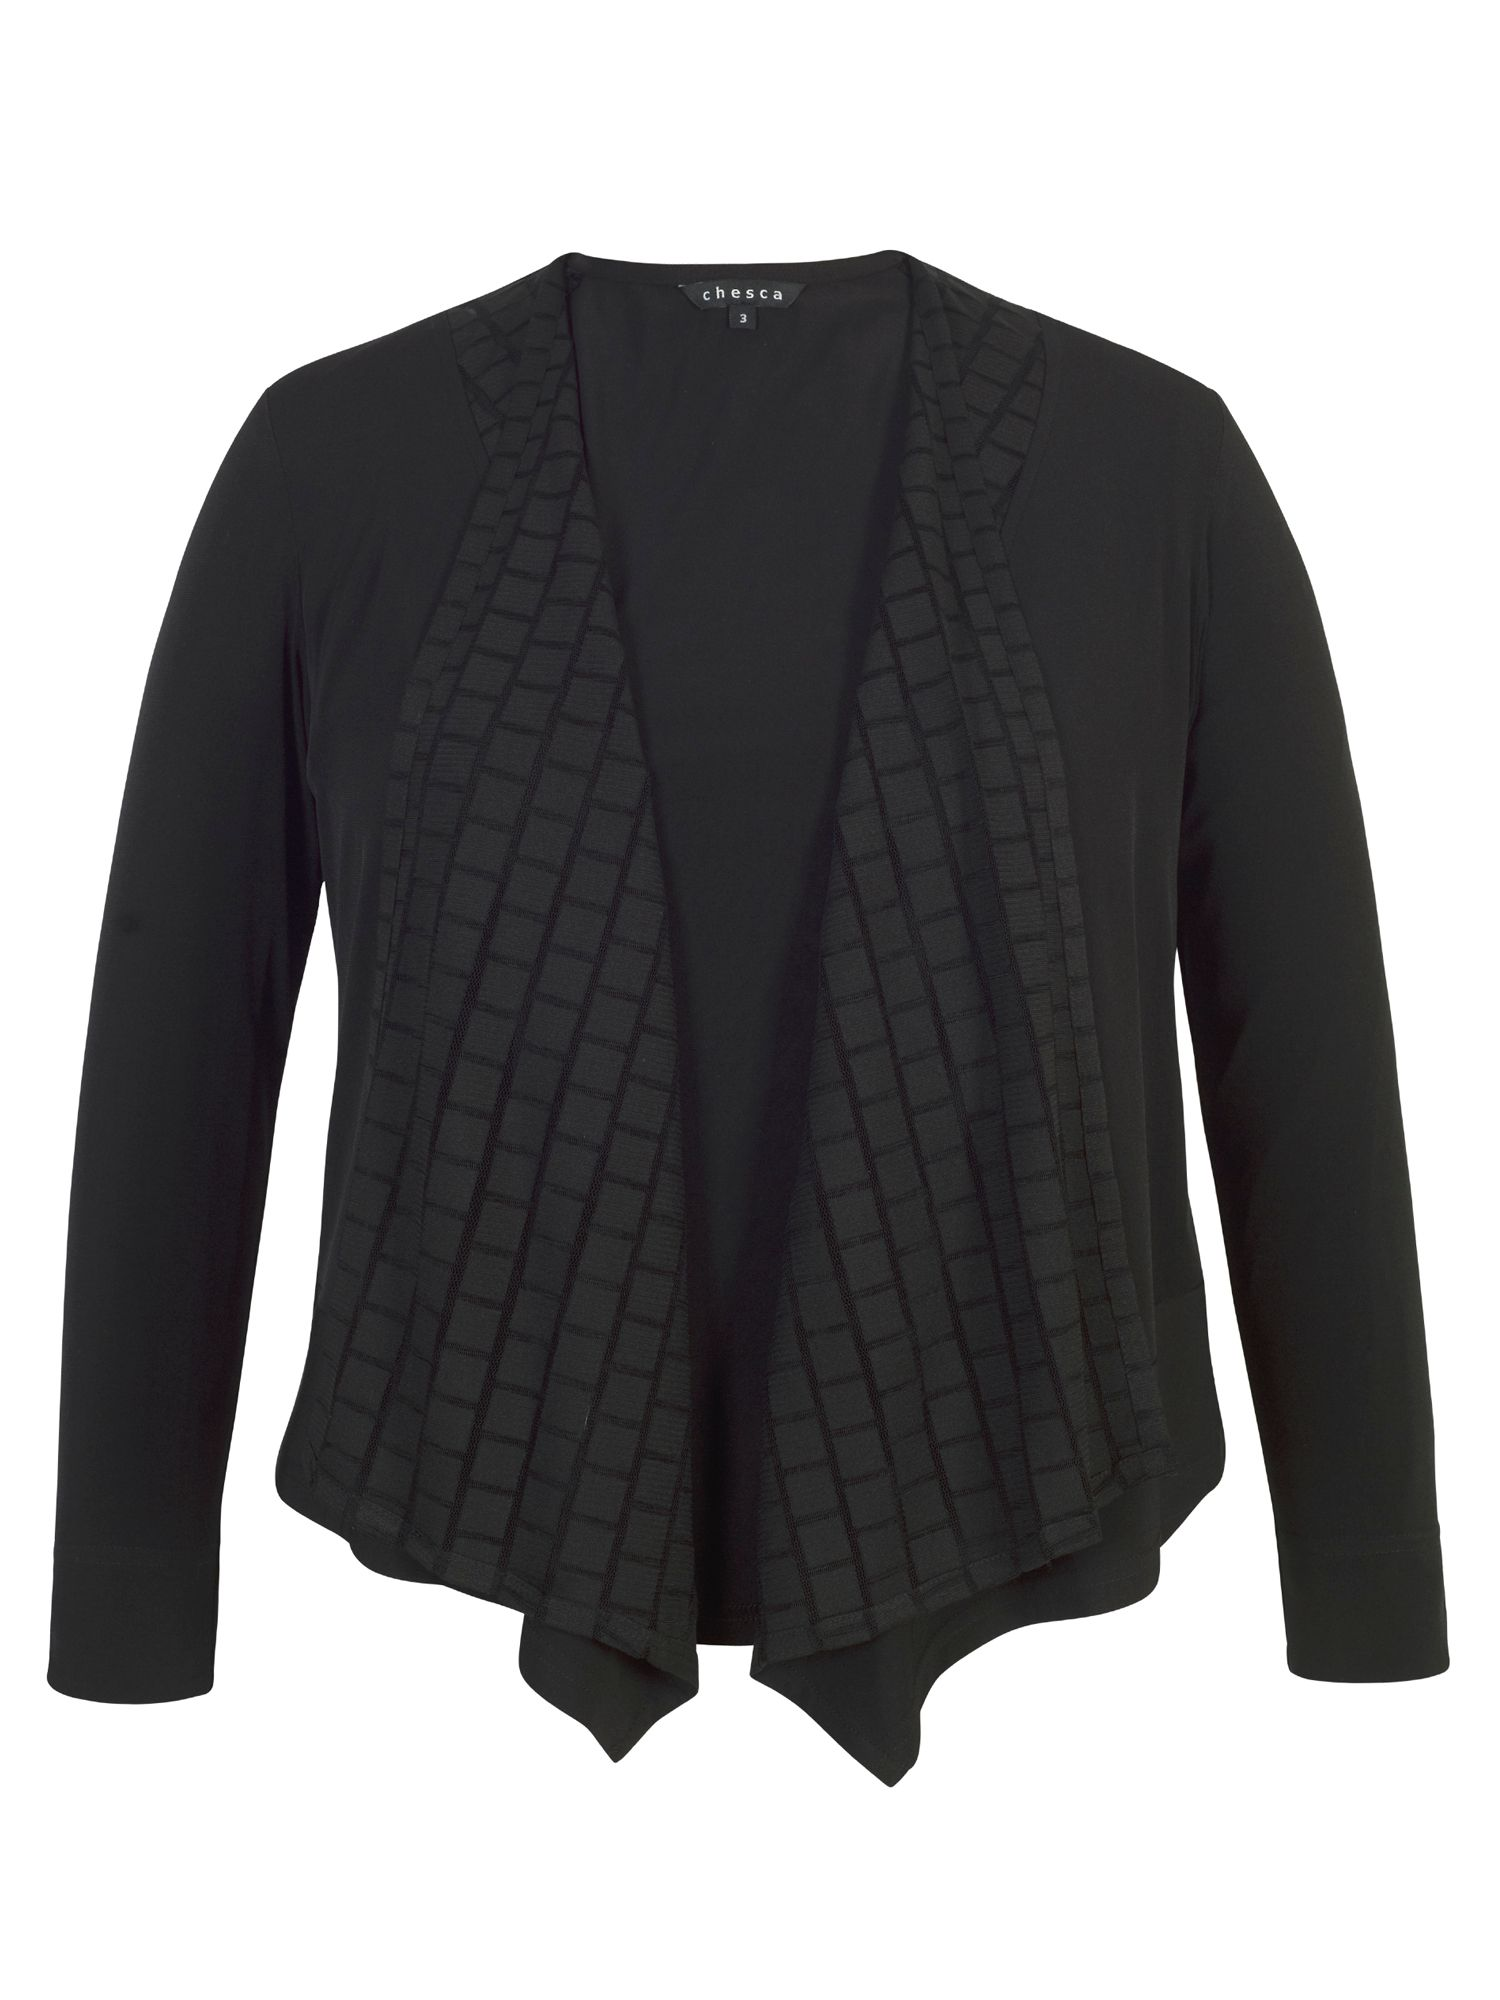 Chesca Jersey Shrug with Mesh Squares Trim, Black